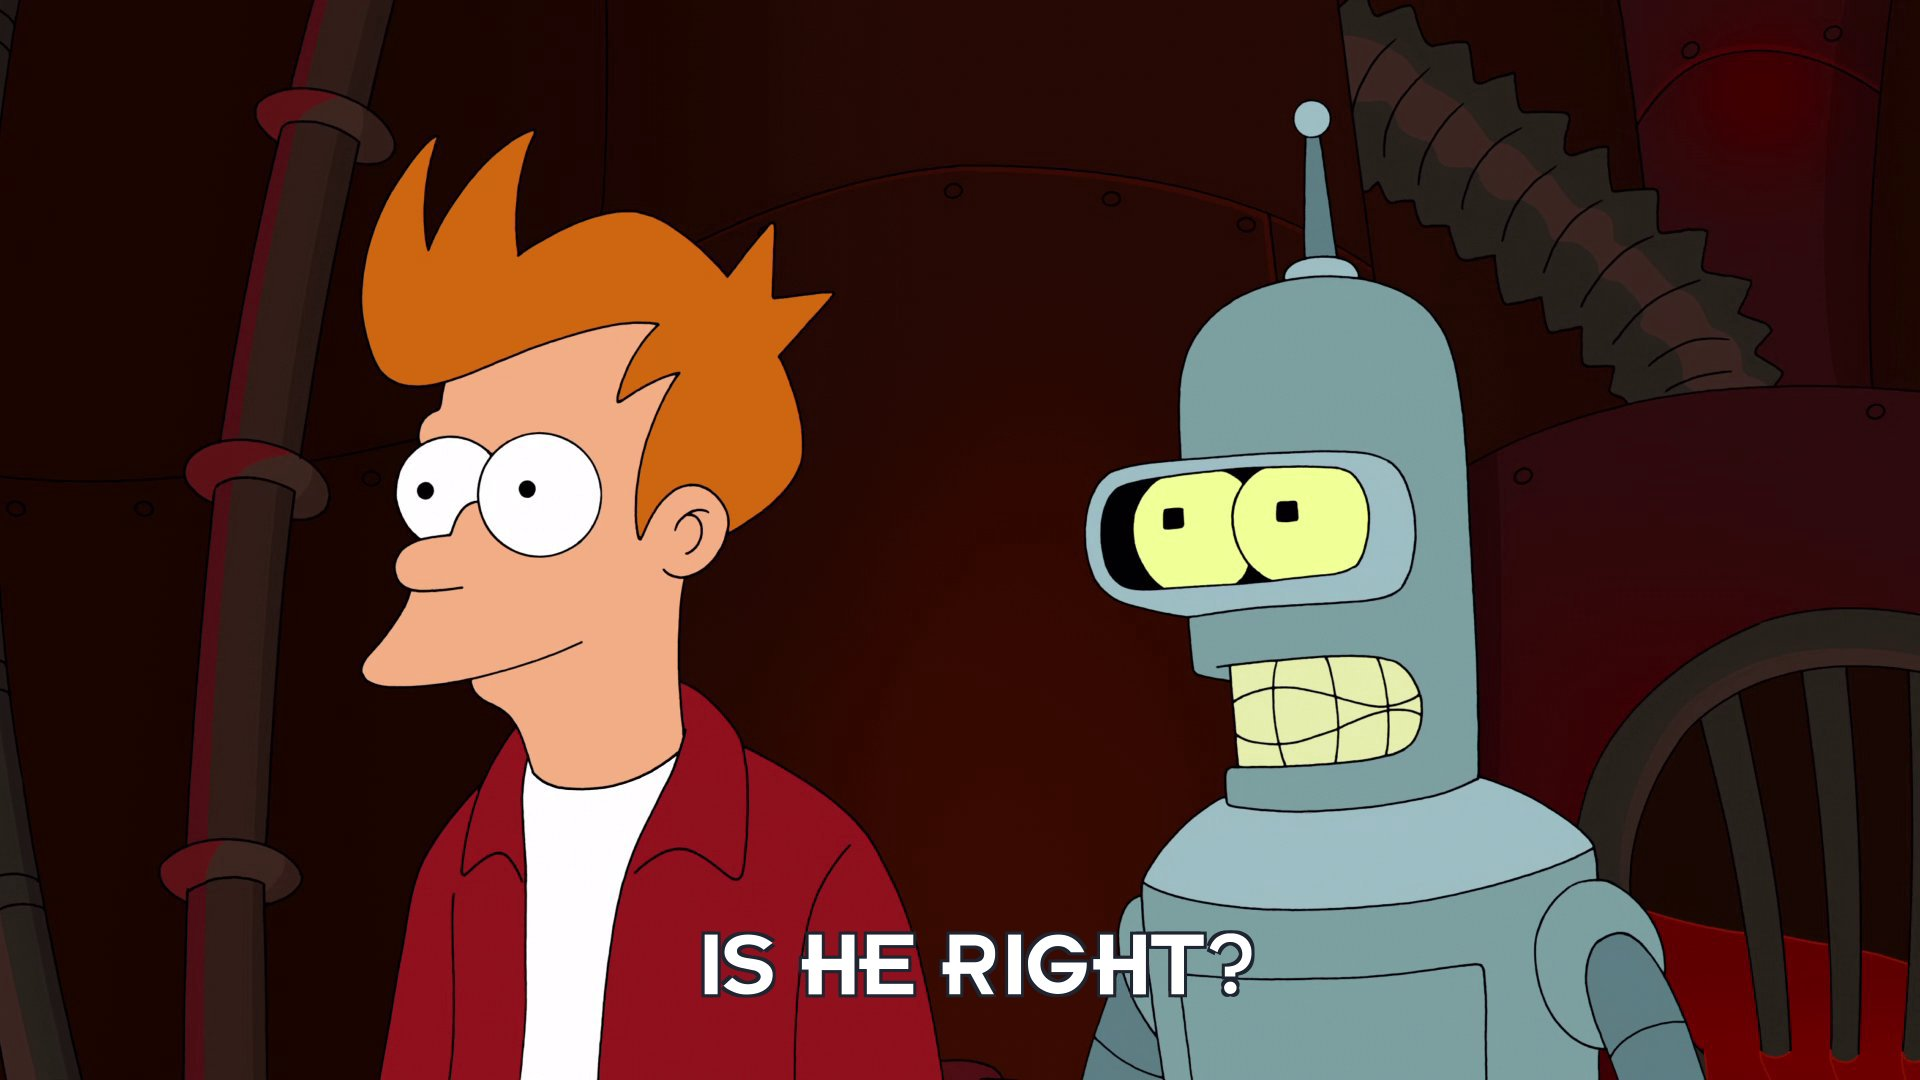 Bender Bending Rodriguez: Is he right?